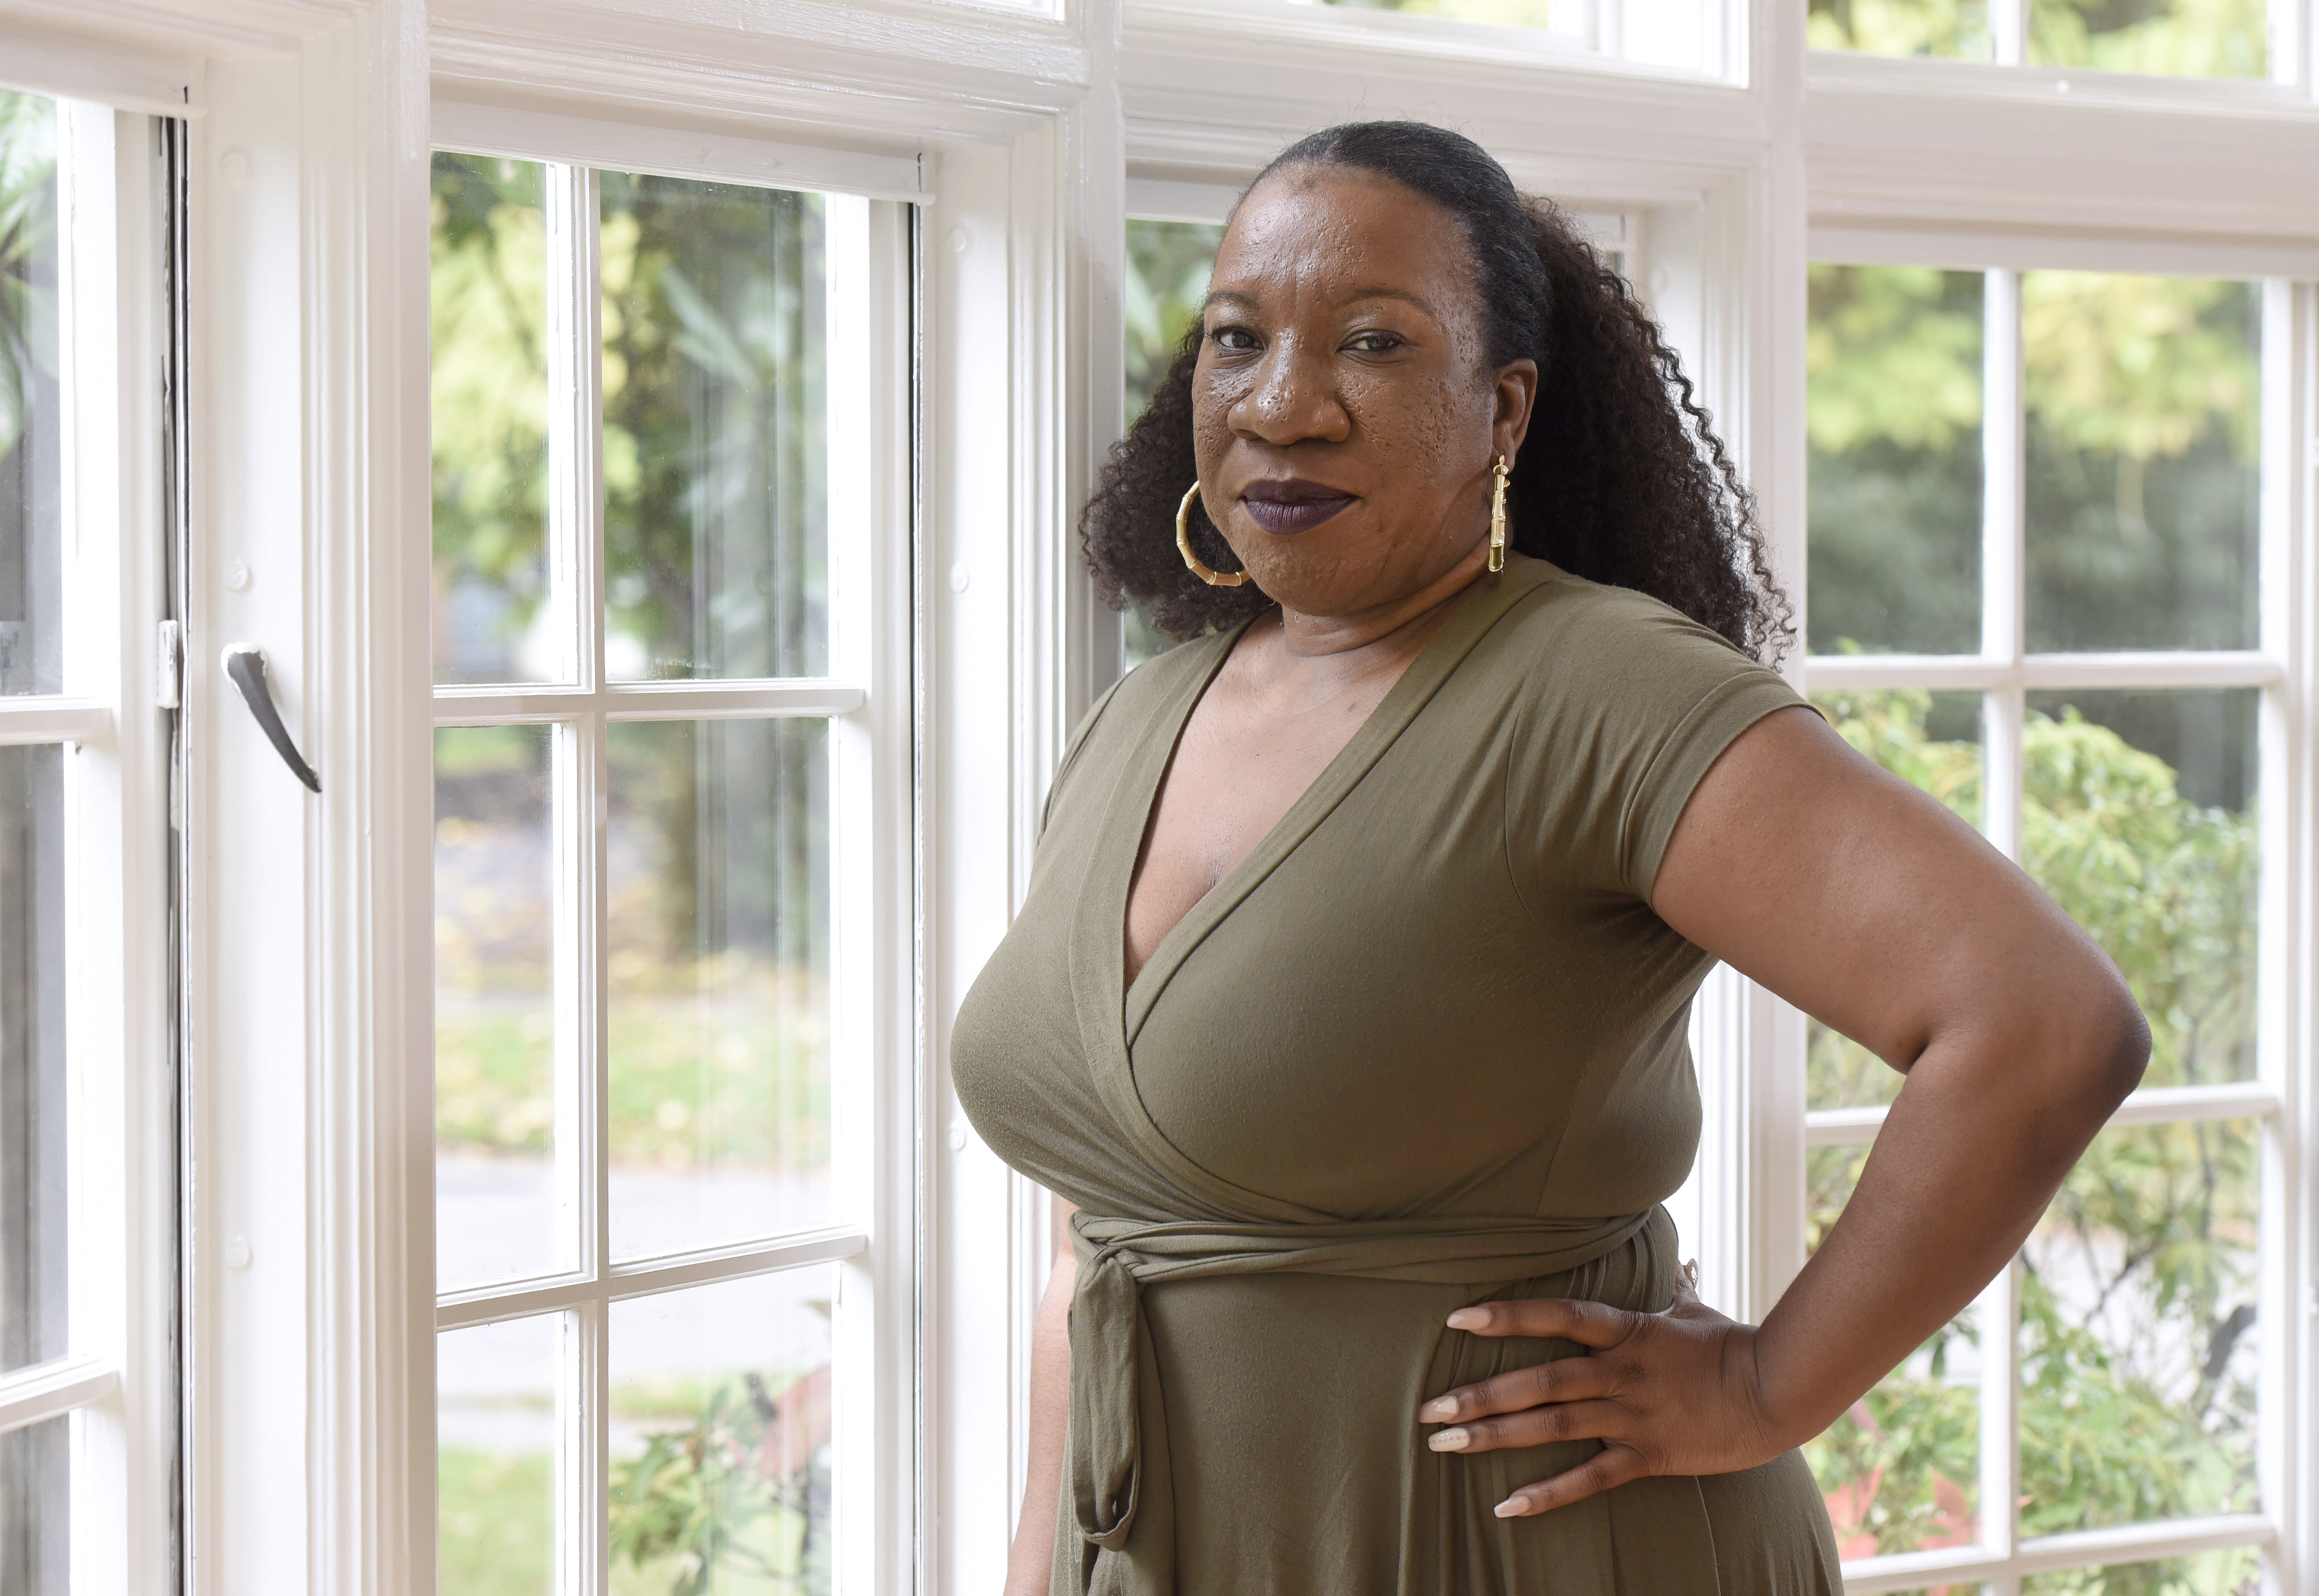 Left out of MeToo: New initiative focuses on Black survivors